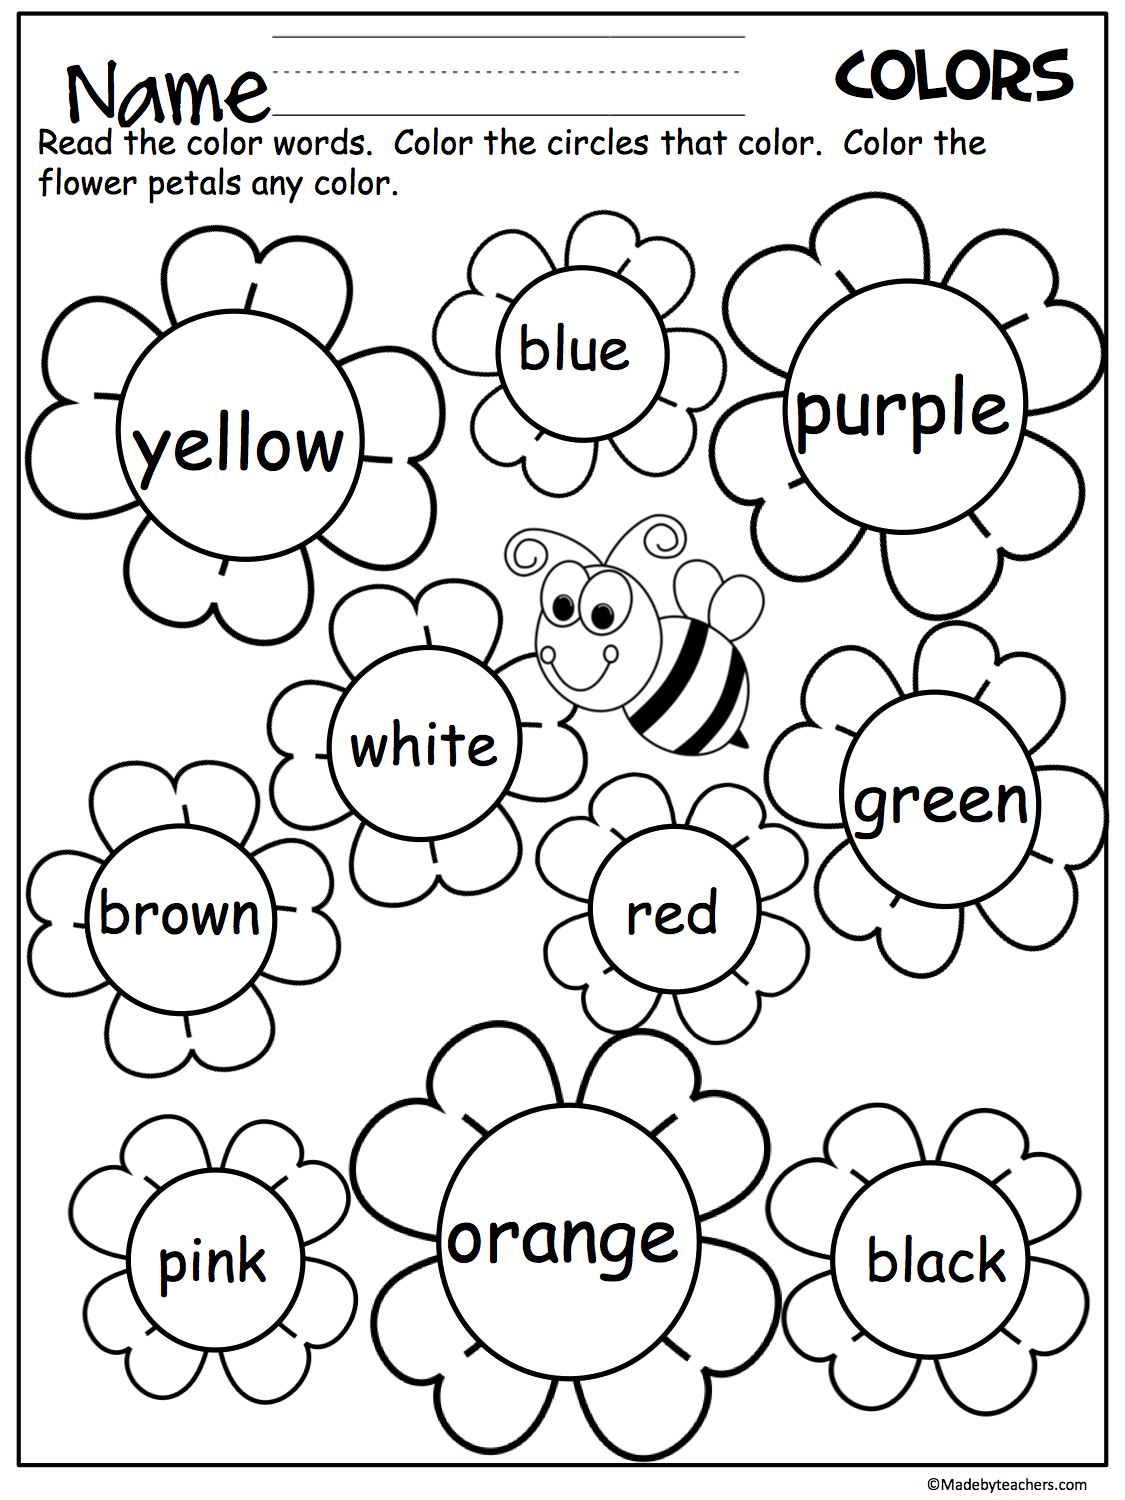 worksheet Color Brown Worksheets flower color words worksheet colors worksheets and free great for the spring